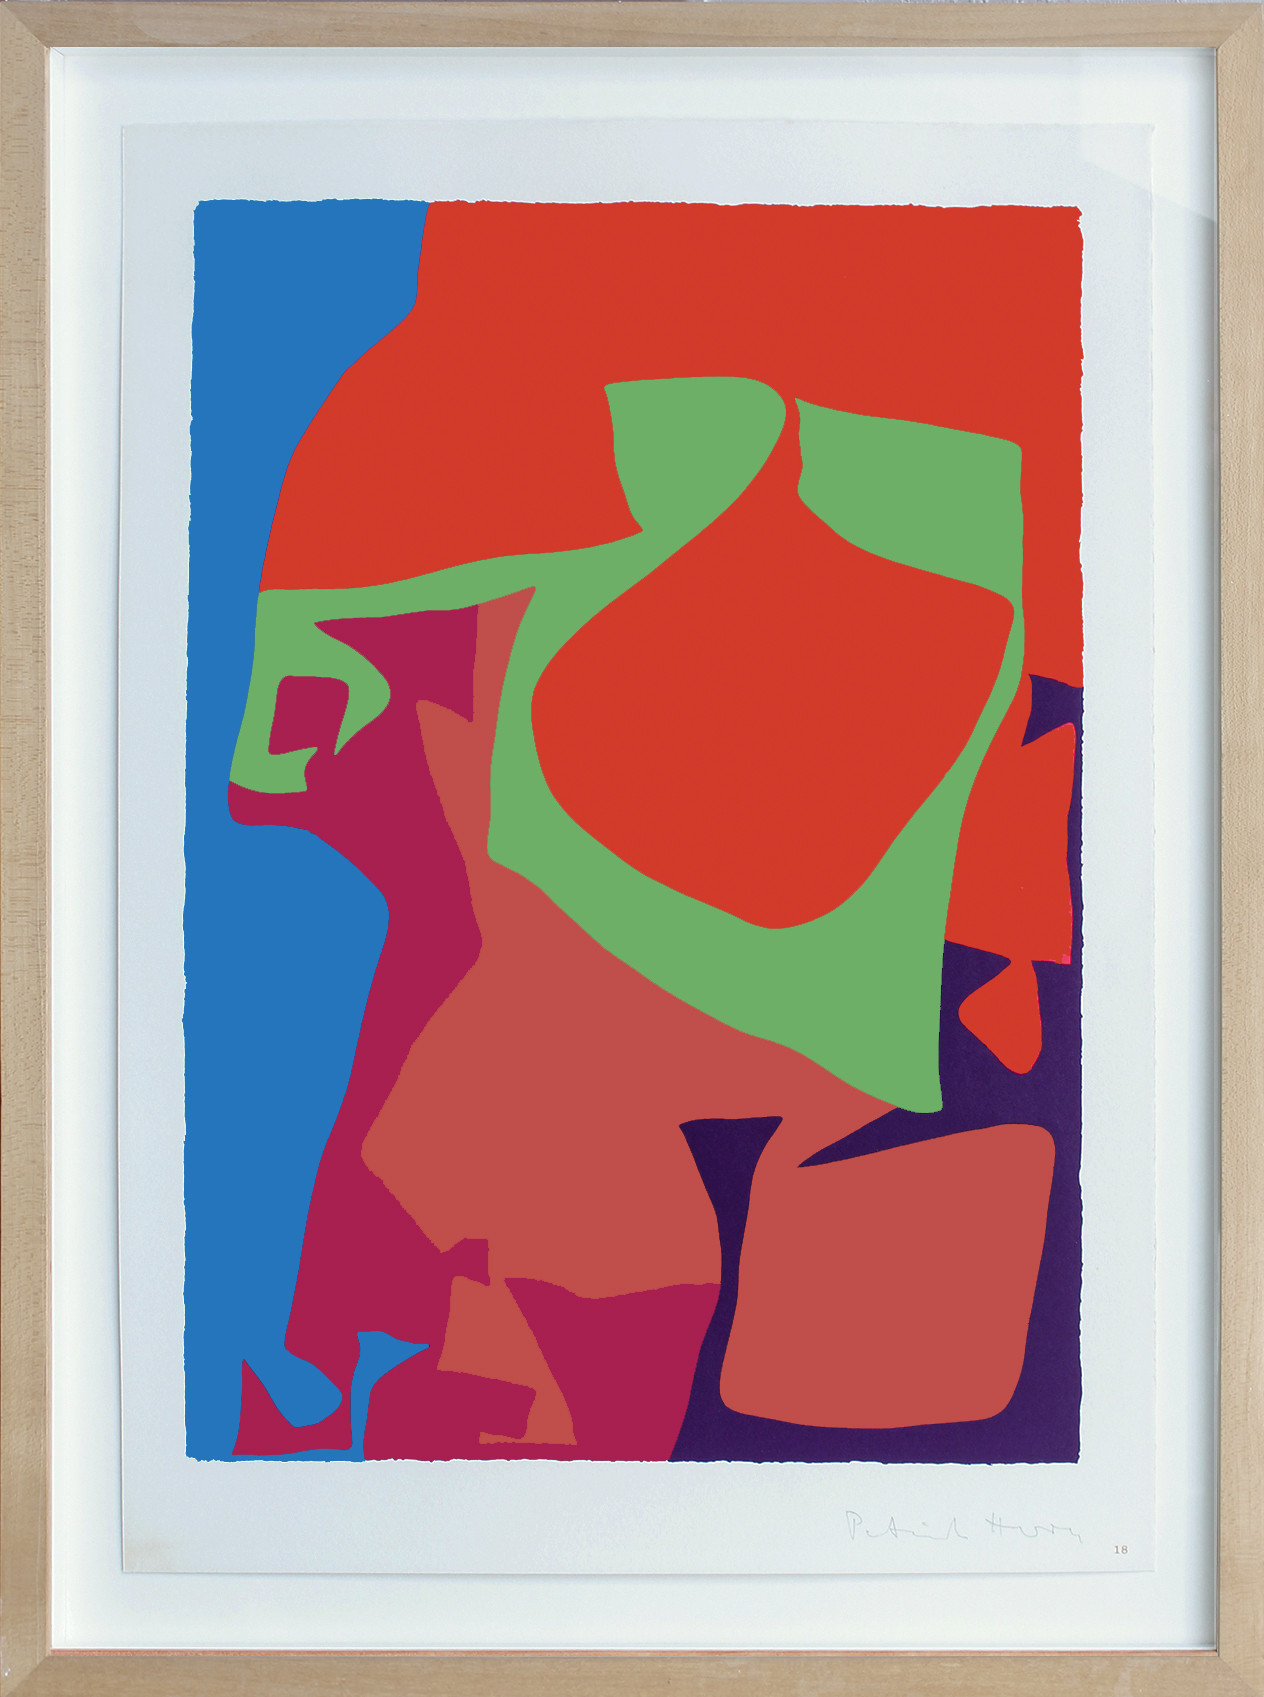 "<span class=""link fancybox-details-link""><a href=""/artists/93-patrick-heron-cbe/works/5660-patrick-heron-cbe-first-vertical-screenprint-18-from-shapes-of-1978/"">View Detail Page</a></span><div class=""artist""><strong>Patrick Heron CBE</strong></div> 1920 – 1999 <div class=""title""><em>First Vertical Screenprint : 18 from 'Shapes of Colour' suite</em>, 1978</div> <div class=""signed_and_dated"">signed 'Patrick Heron' in pencil, lower right</div> <div class=""medium"">silkscreen printed in colours on Velin Arches paper</div> <div class=""dimensions"">image size: 43 x 30 cm<br /> 16 7/8 x 11 3/4 in<br /> sheet size: 50 x 35.2 cm<br /> 19 3/4 x 13 7/8 in</div> <div class=""edition_details"">from the edition of 50 signed copies of each of the 20 prints, numbered 1 to 50, aside from 10 Artist's Proofs</div><div class=""copyright_line"">© The Estate of Patrick Heron</div>"